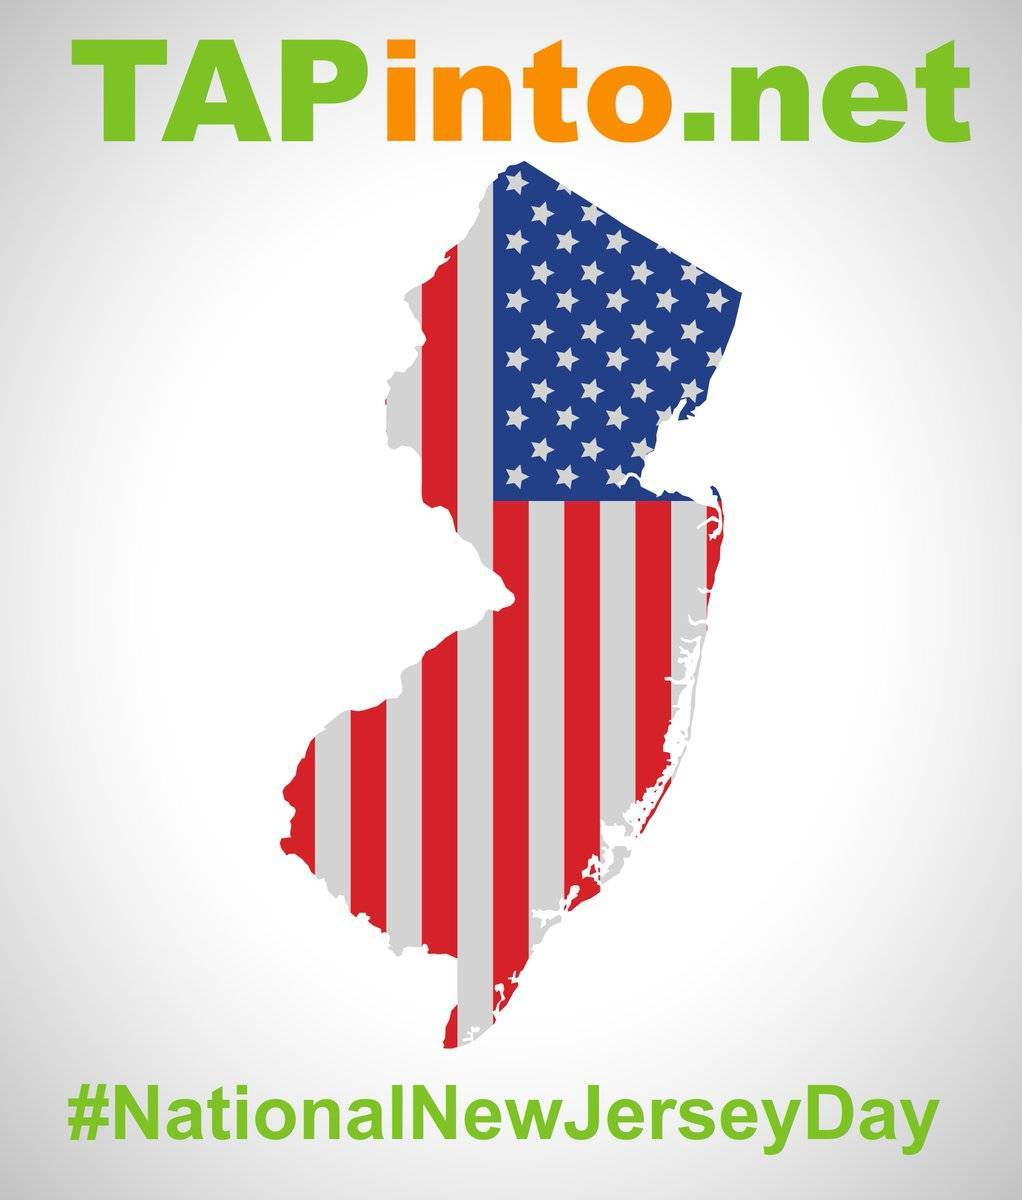 bfa550b71a9c8e0ab06f_TAPinto_National_New_Jersey_Day.jpg